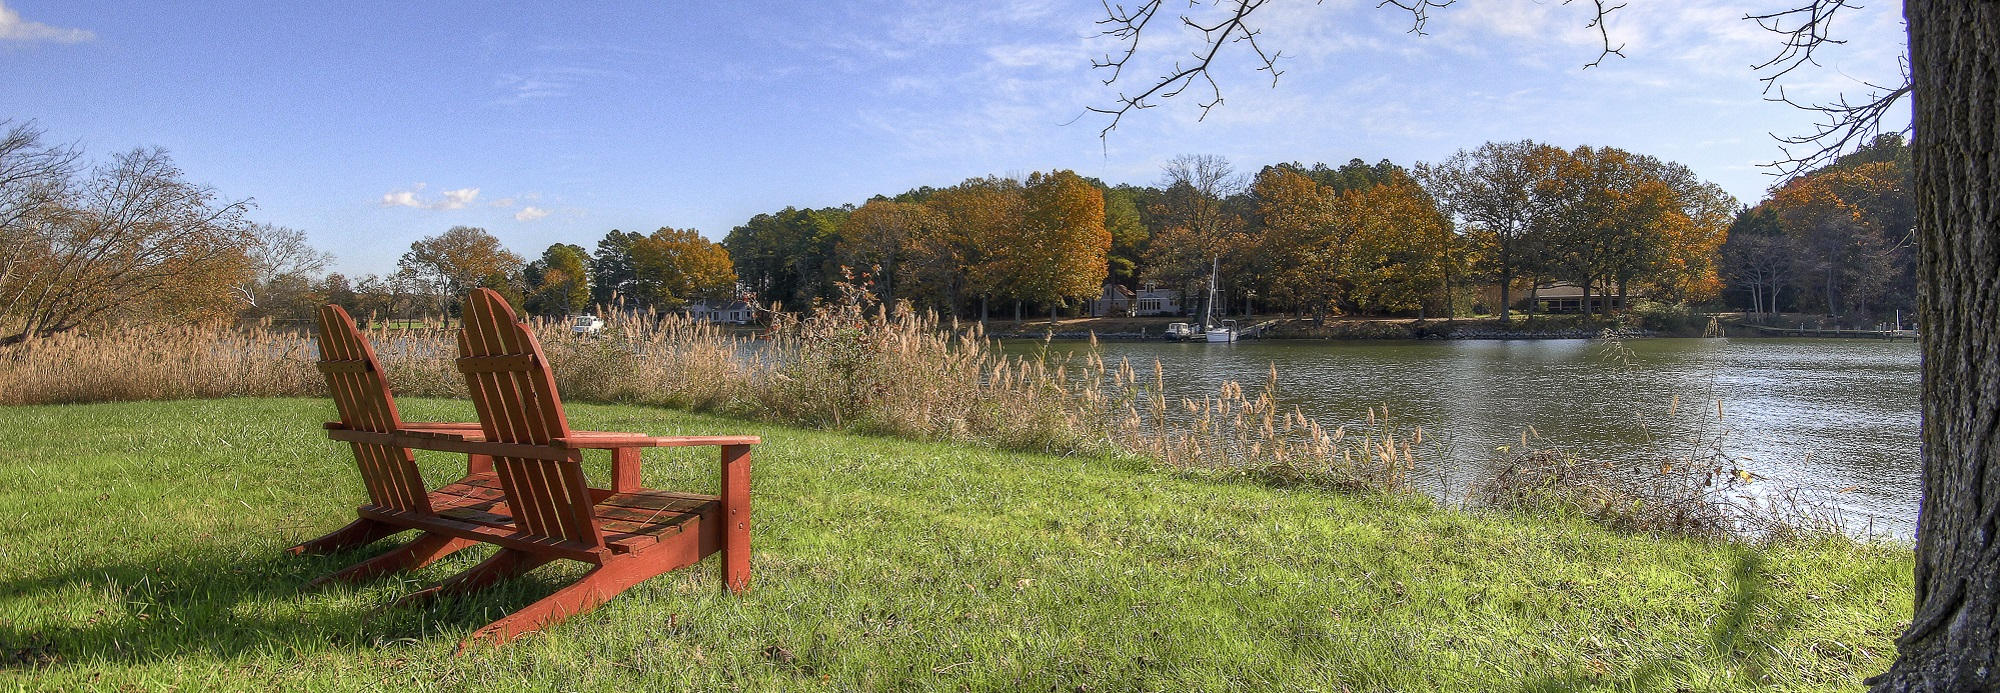 two red adirondacks in grass waterside with trees in background